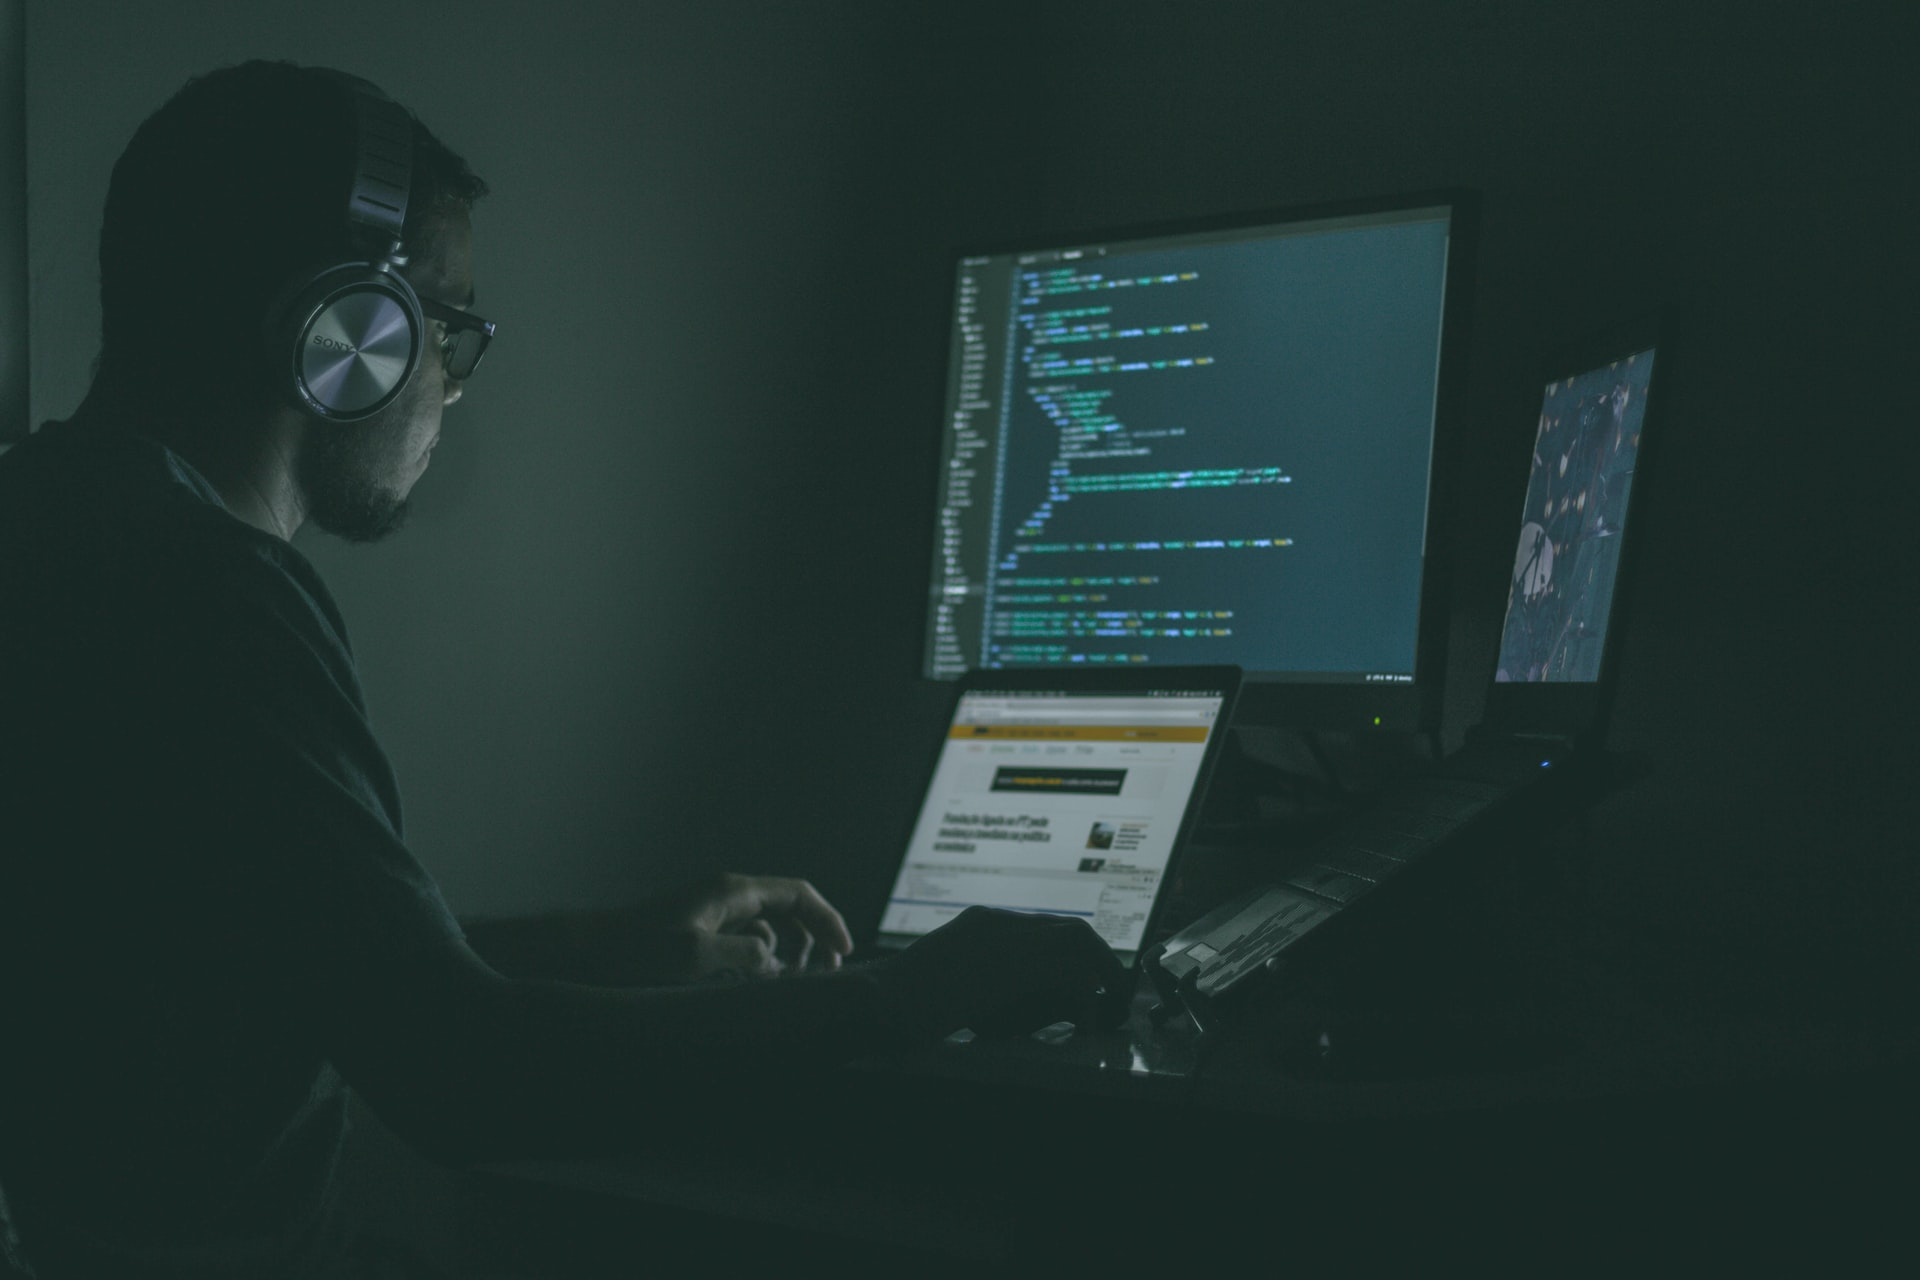 White man with headphones sitting in the dark looking at a computer screen with code text on it.